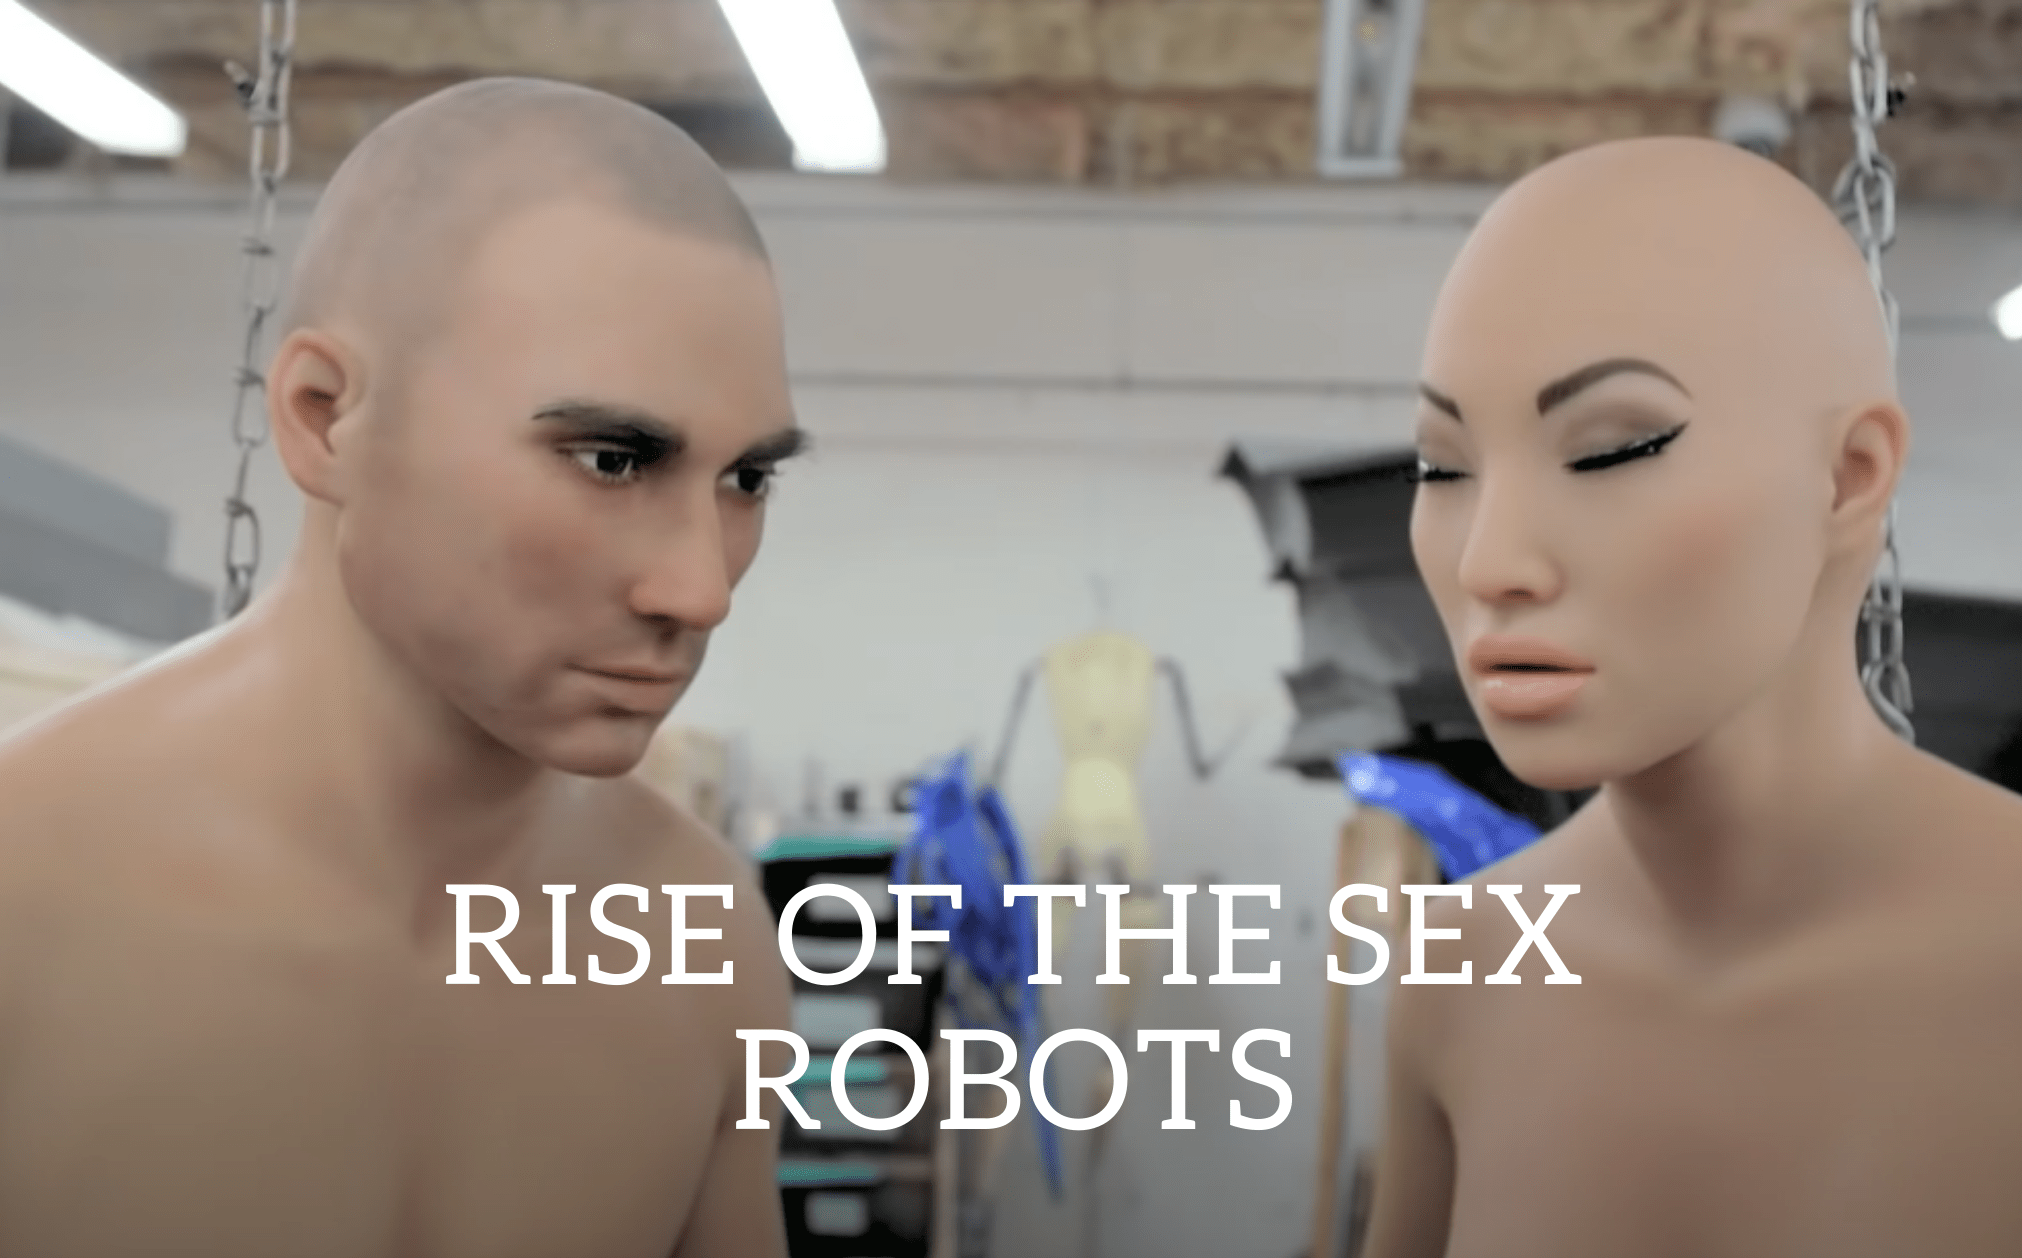 Rise of the Sex Robots